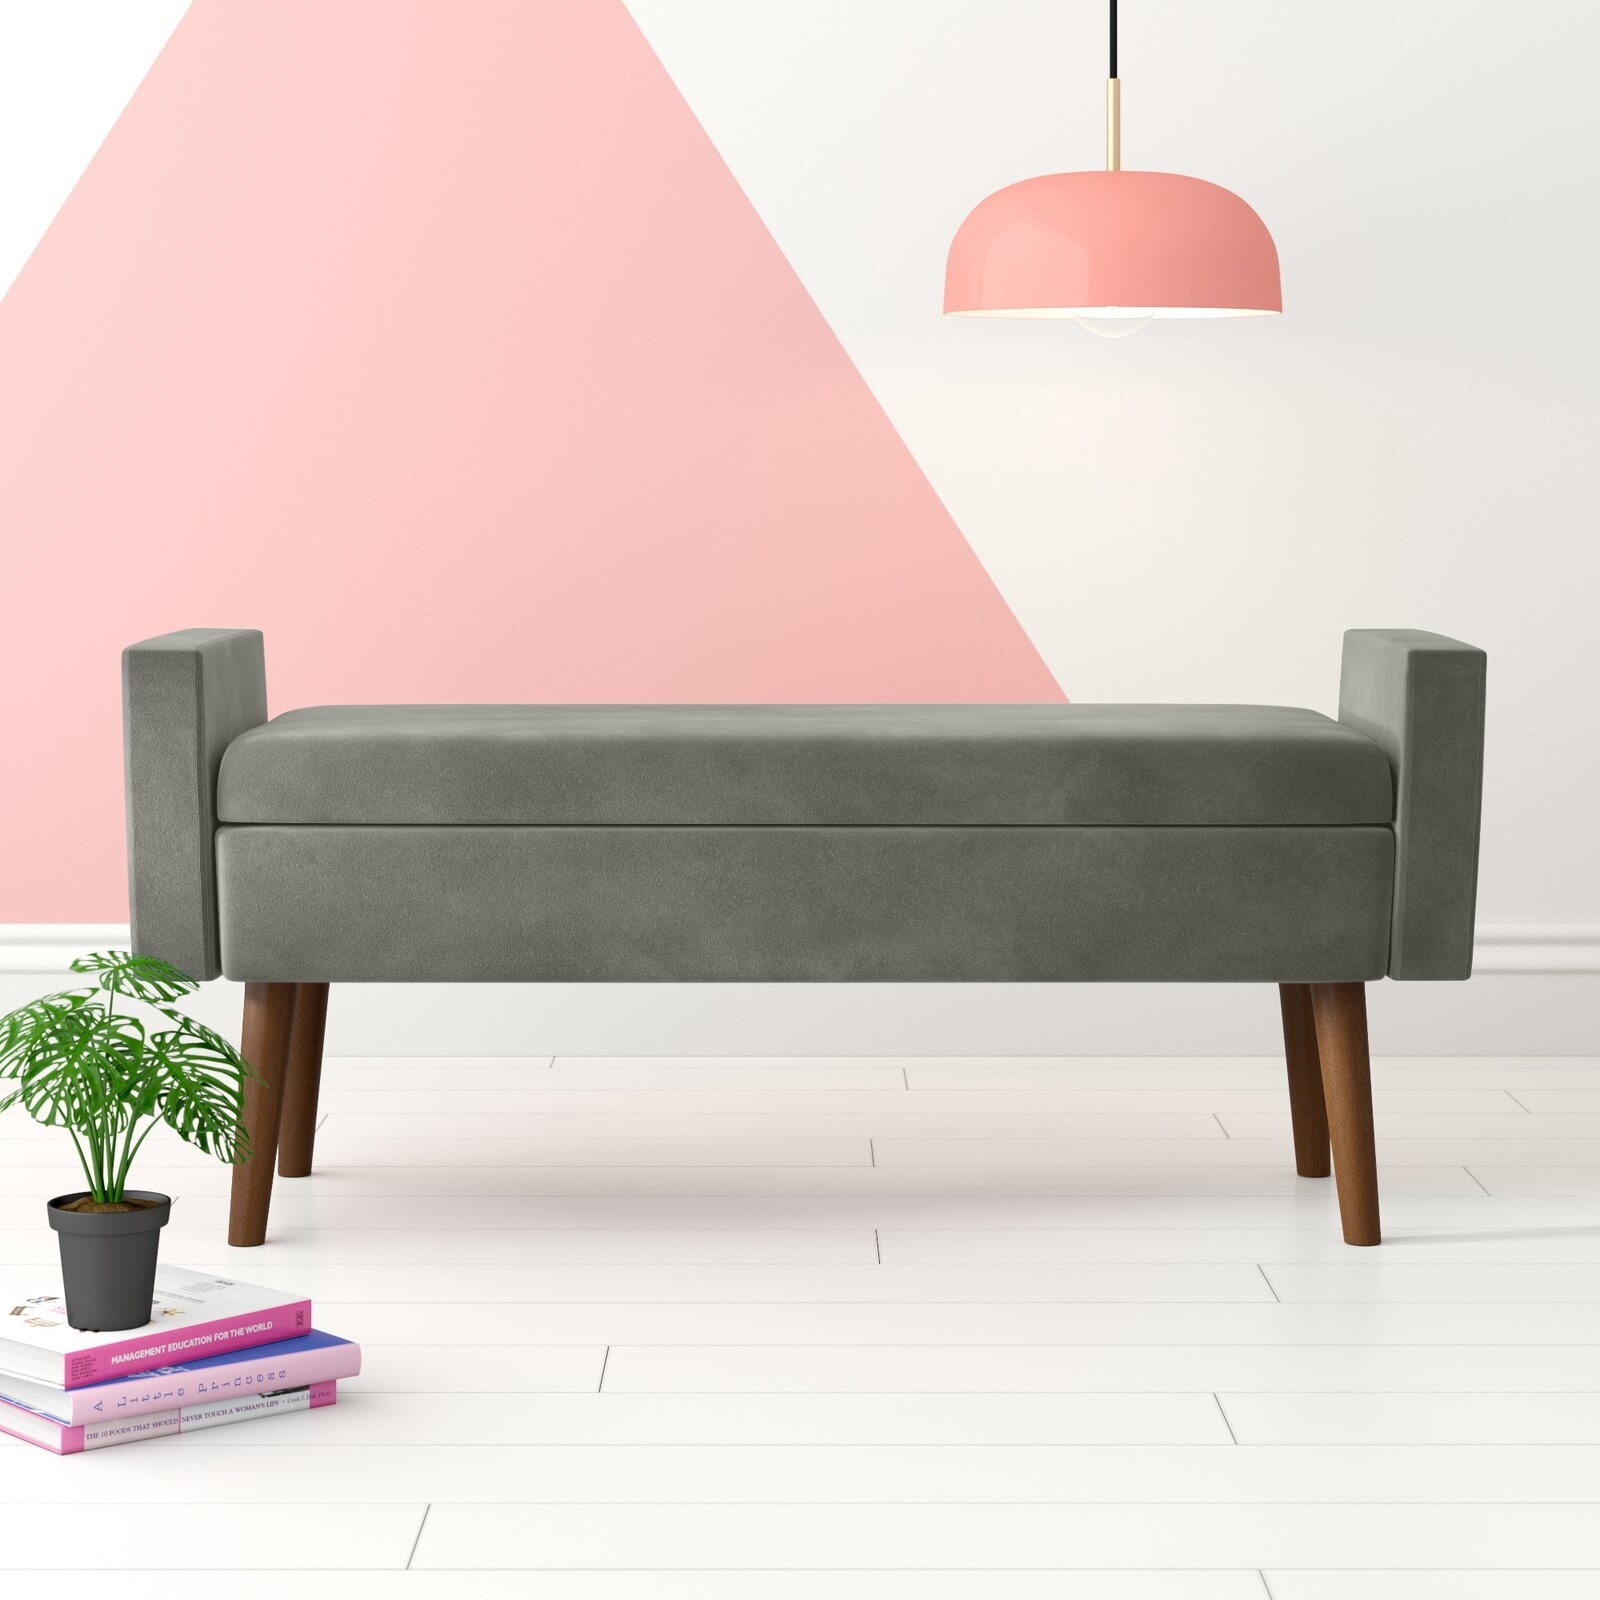 The bench, which has an open back, arm rests on either side, and wooden legs, in gray